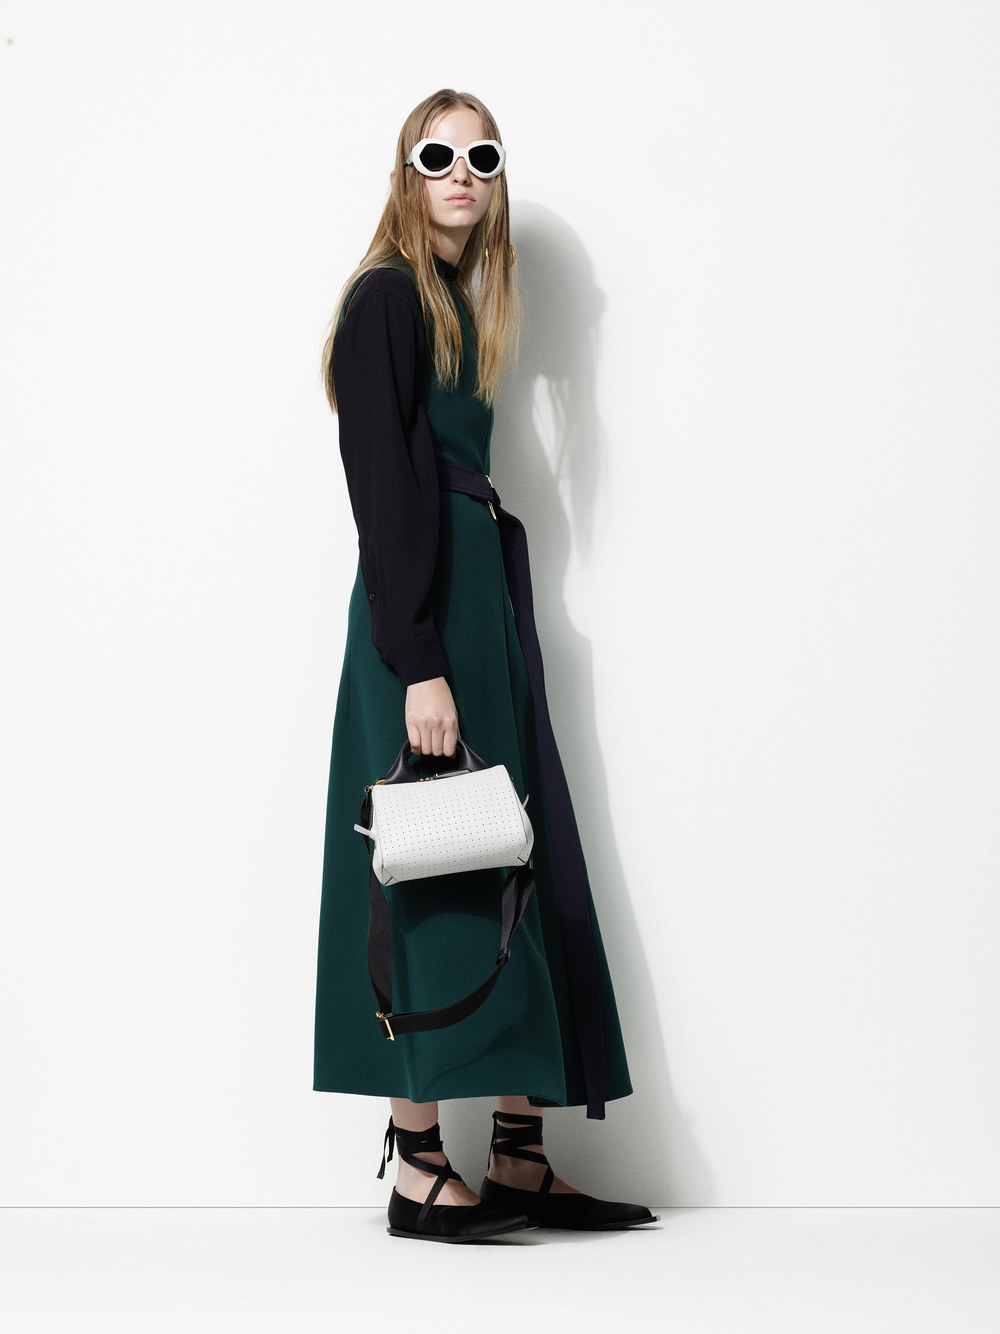 marni-pre-fall-2016-lookbook-08.jpg